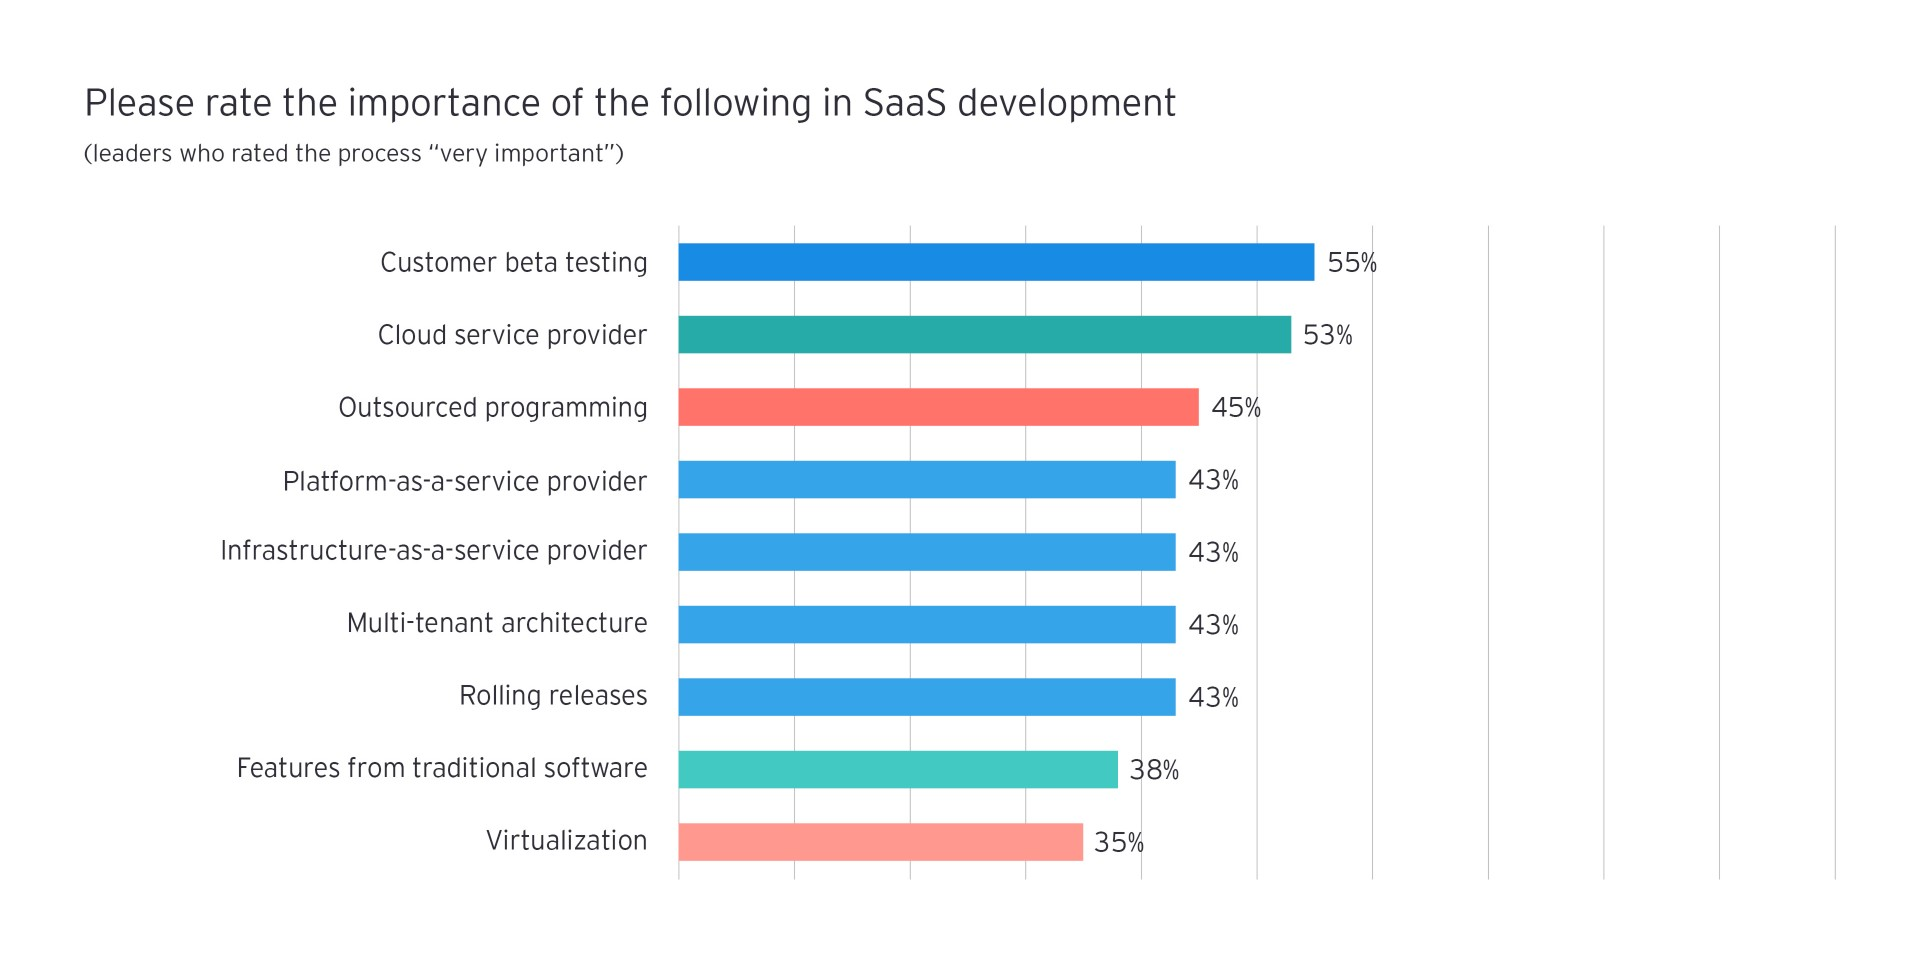 Please rate the importance SaaS development